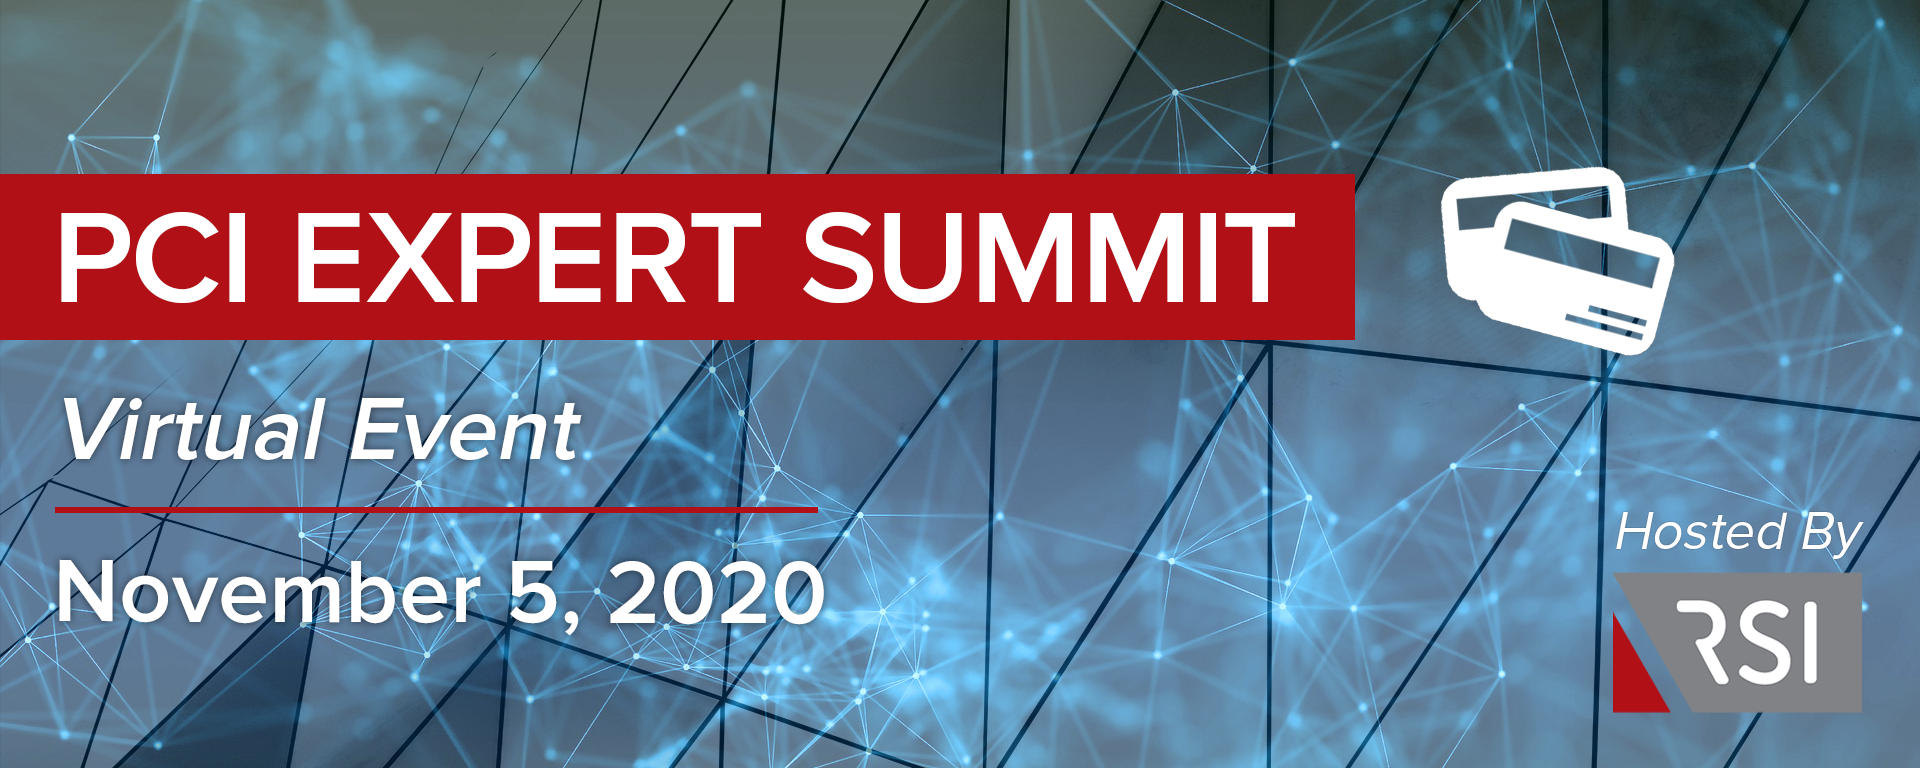 PCI Expert Summer Virtual Event on November 5, 2020. Hosted by RSI.